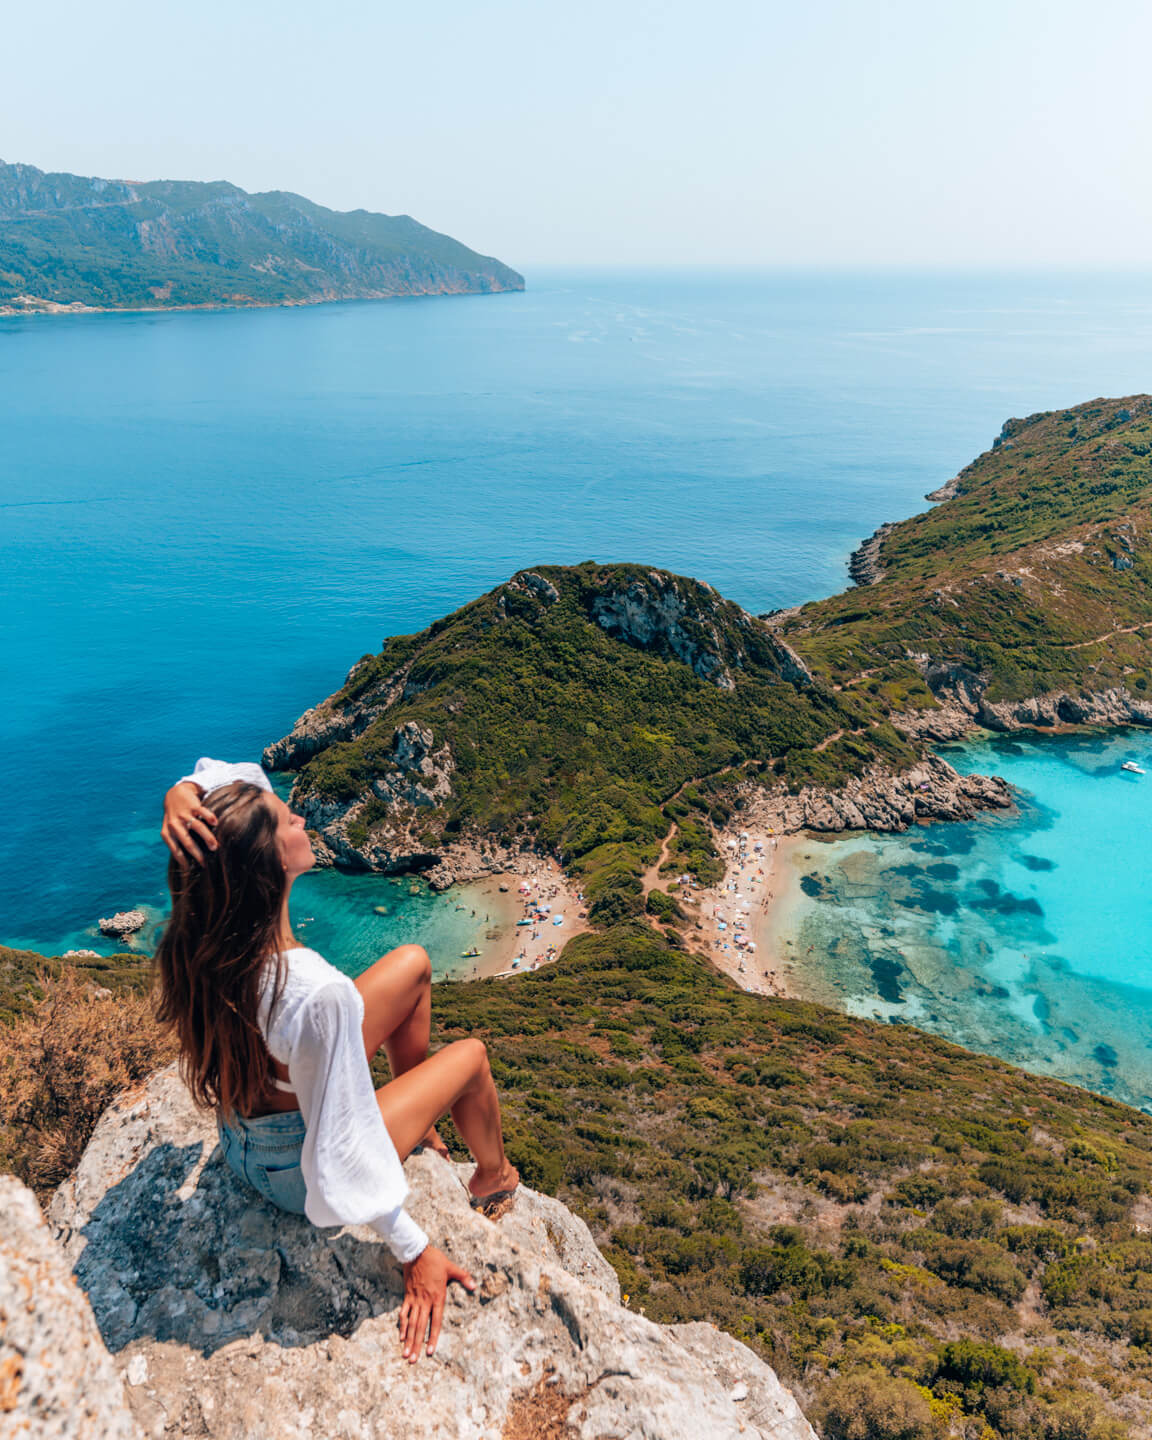 Spectacular view over the two beaches and bays of Porto Timoni in Corfu, Greece